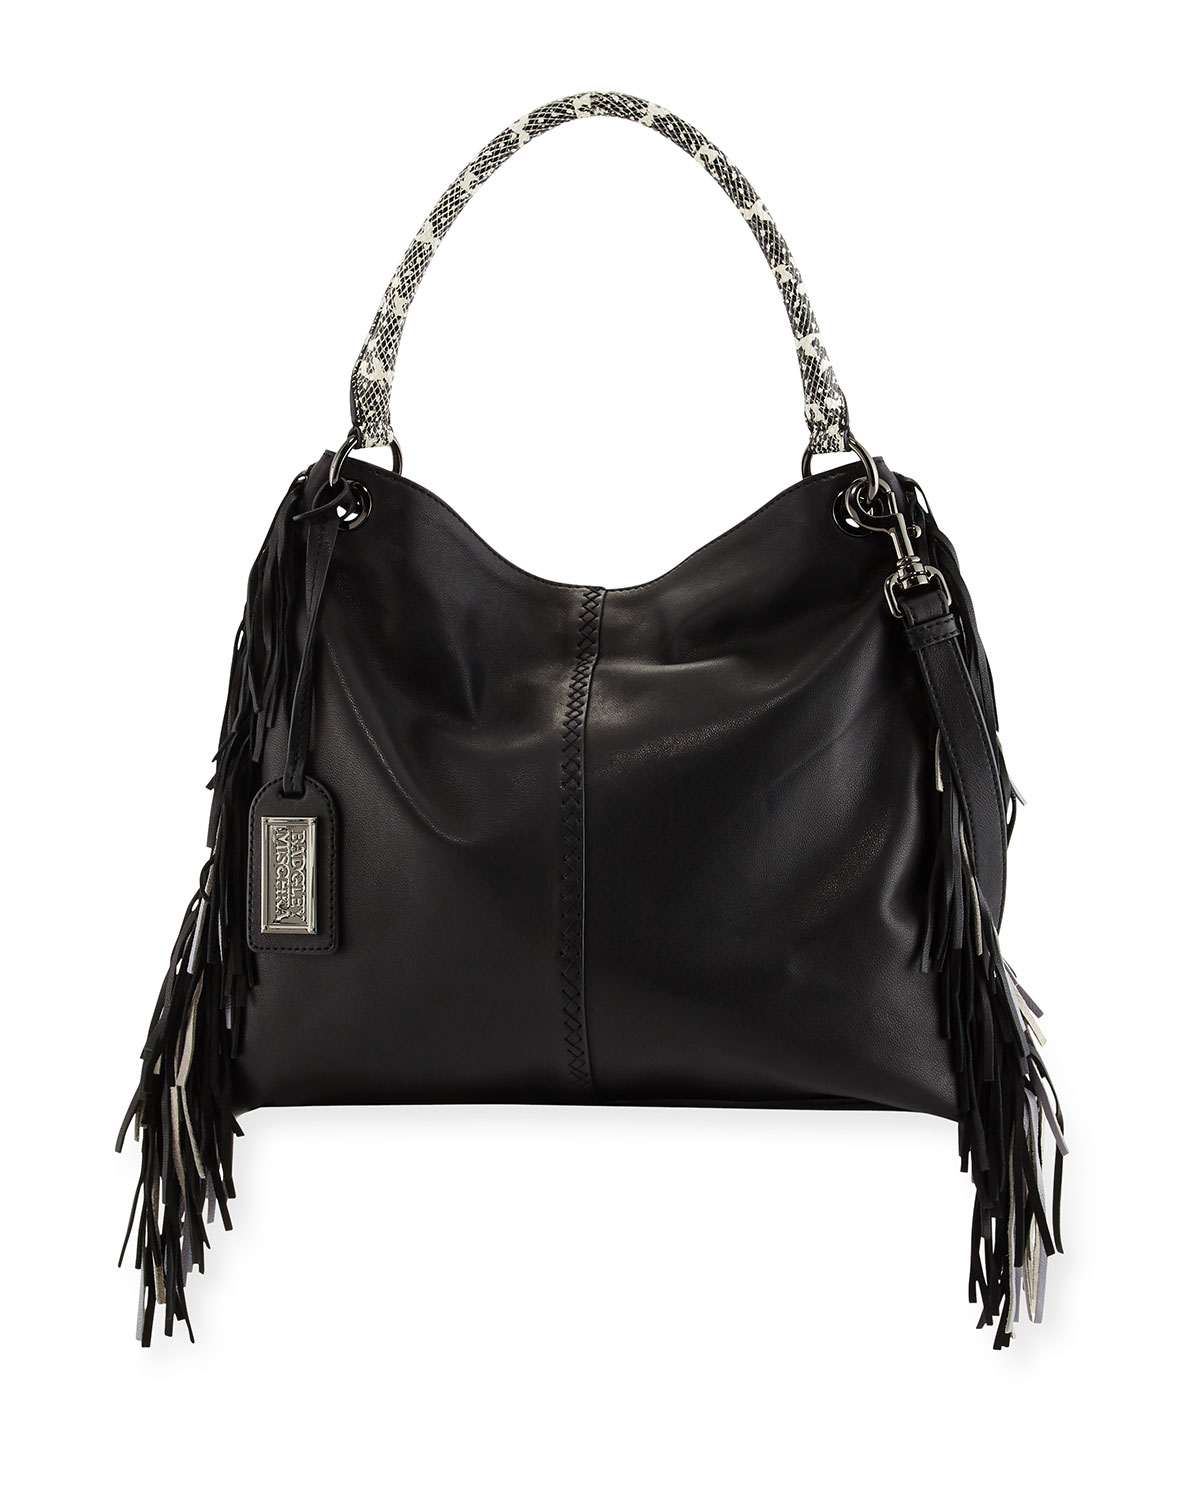 Badgley Mischka Women's Shoulder Bags - people.com